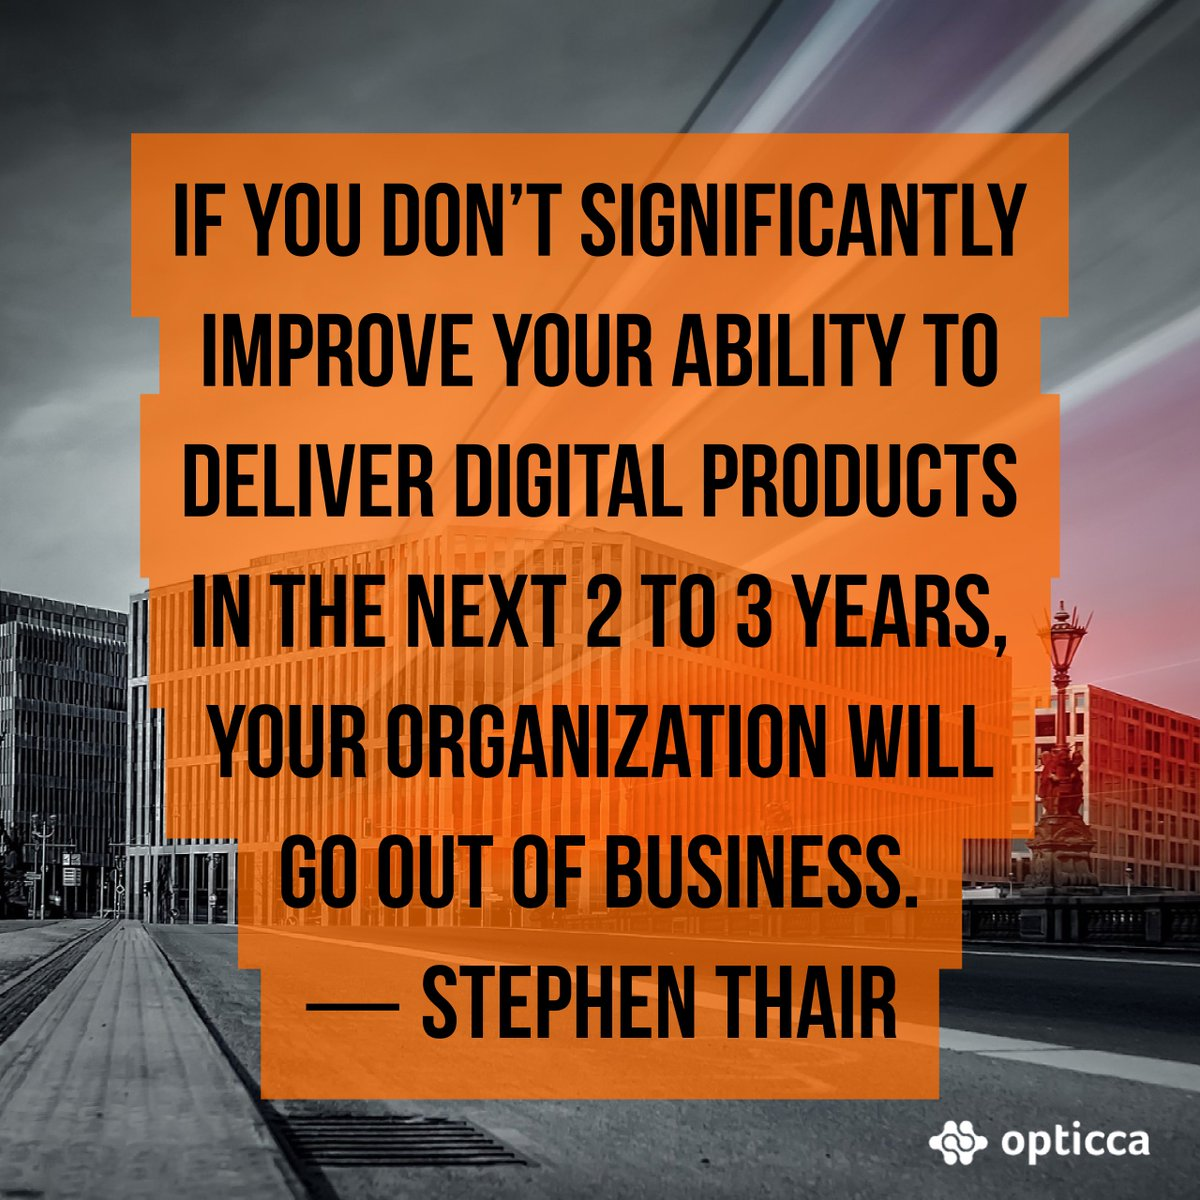 Get into #DevOps  #automation #orchestration #cloud #continuousdelivery #containerization #agiledevelopment #caas #paas #mondaymotivation<br>http://pic.twitter.com/Q4WSORdZwV